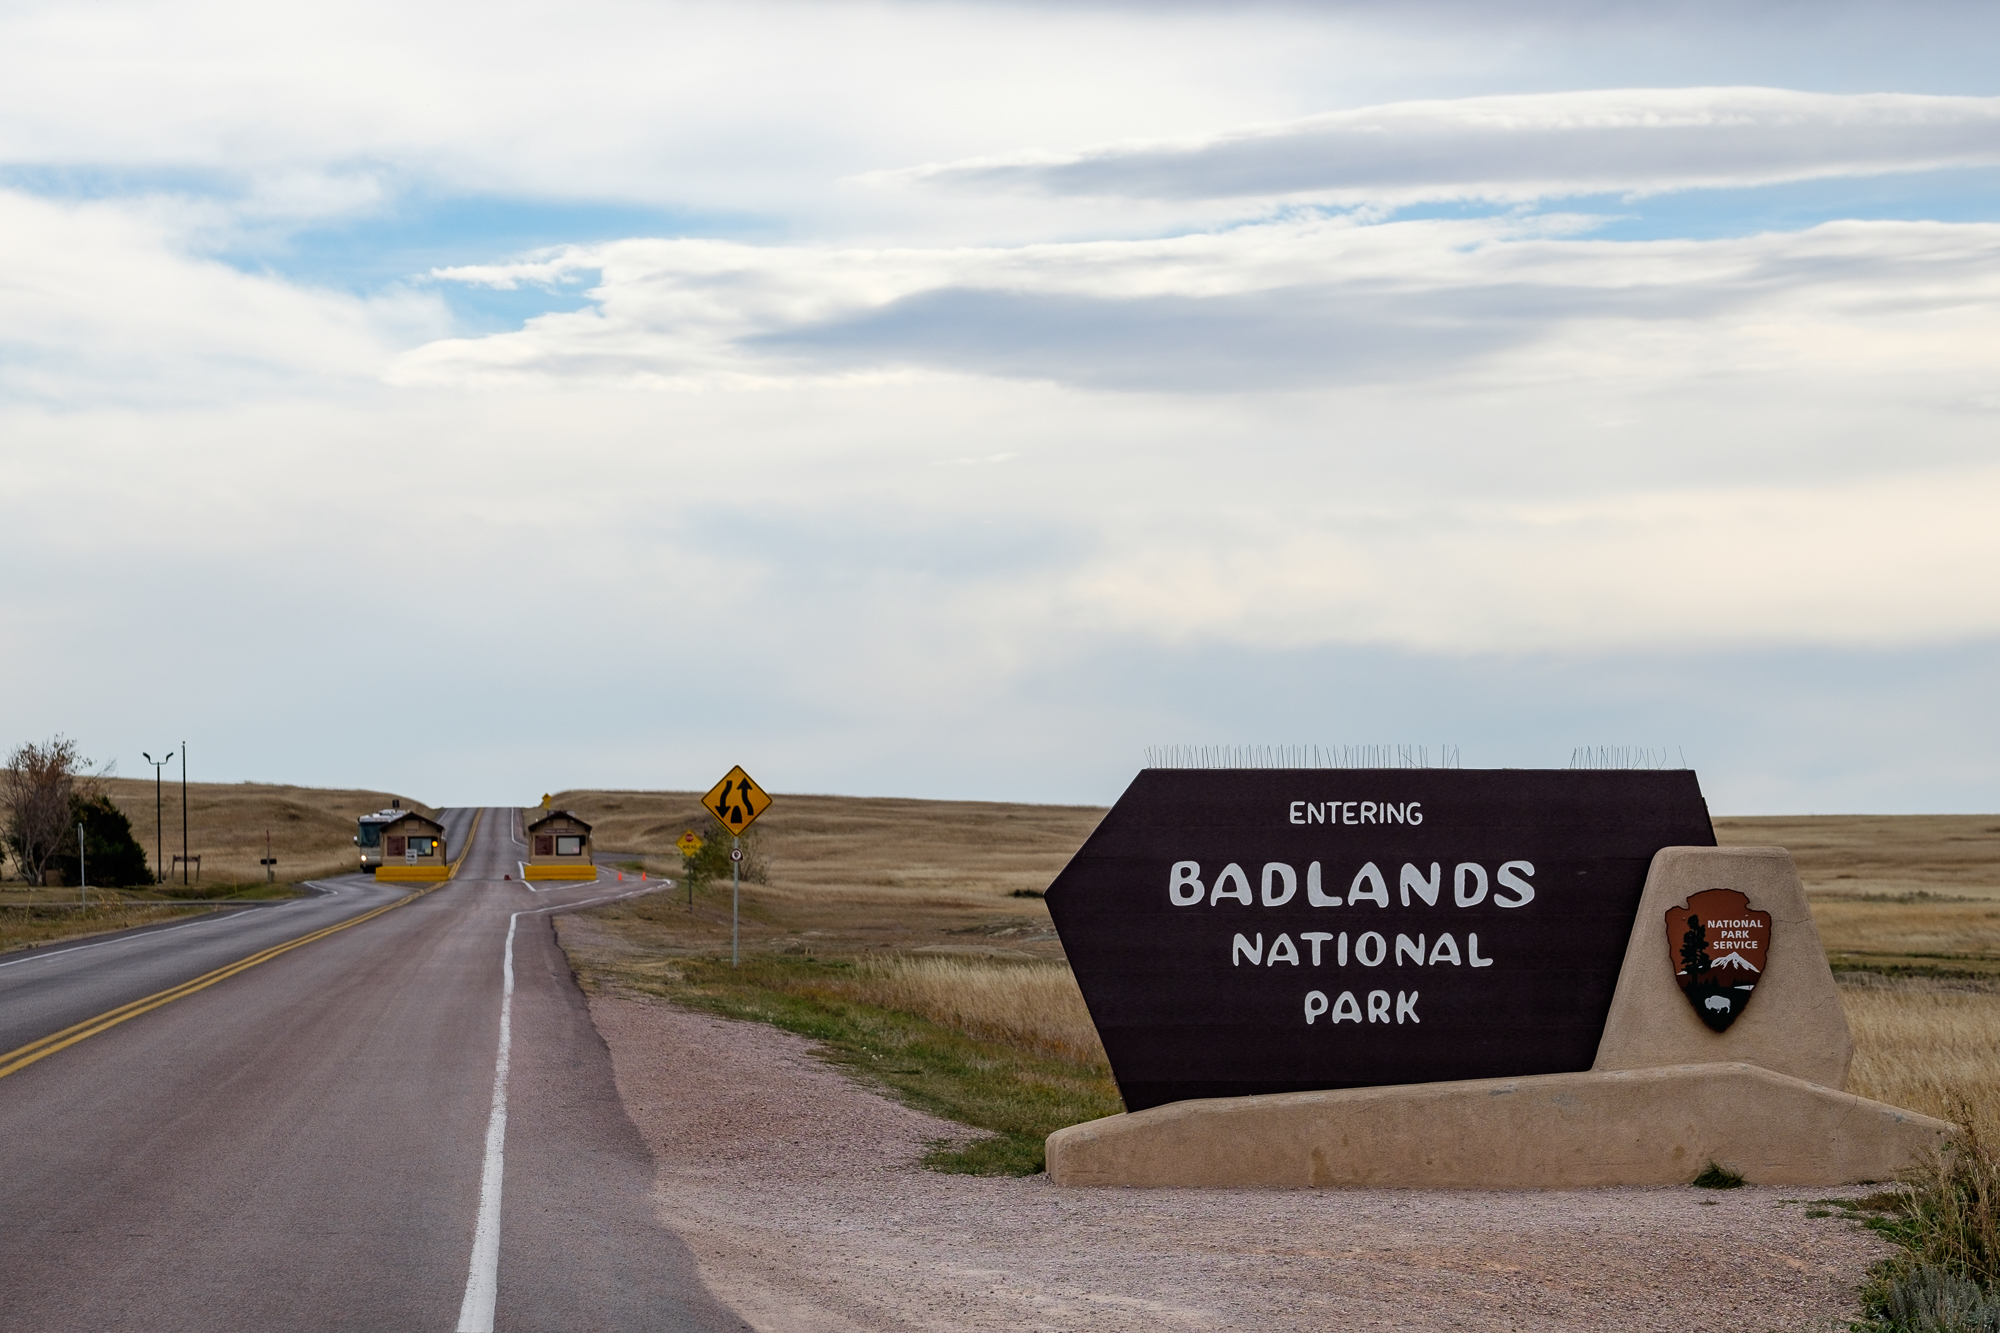 Badlands National Park — The Greatest American Road Trip on